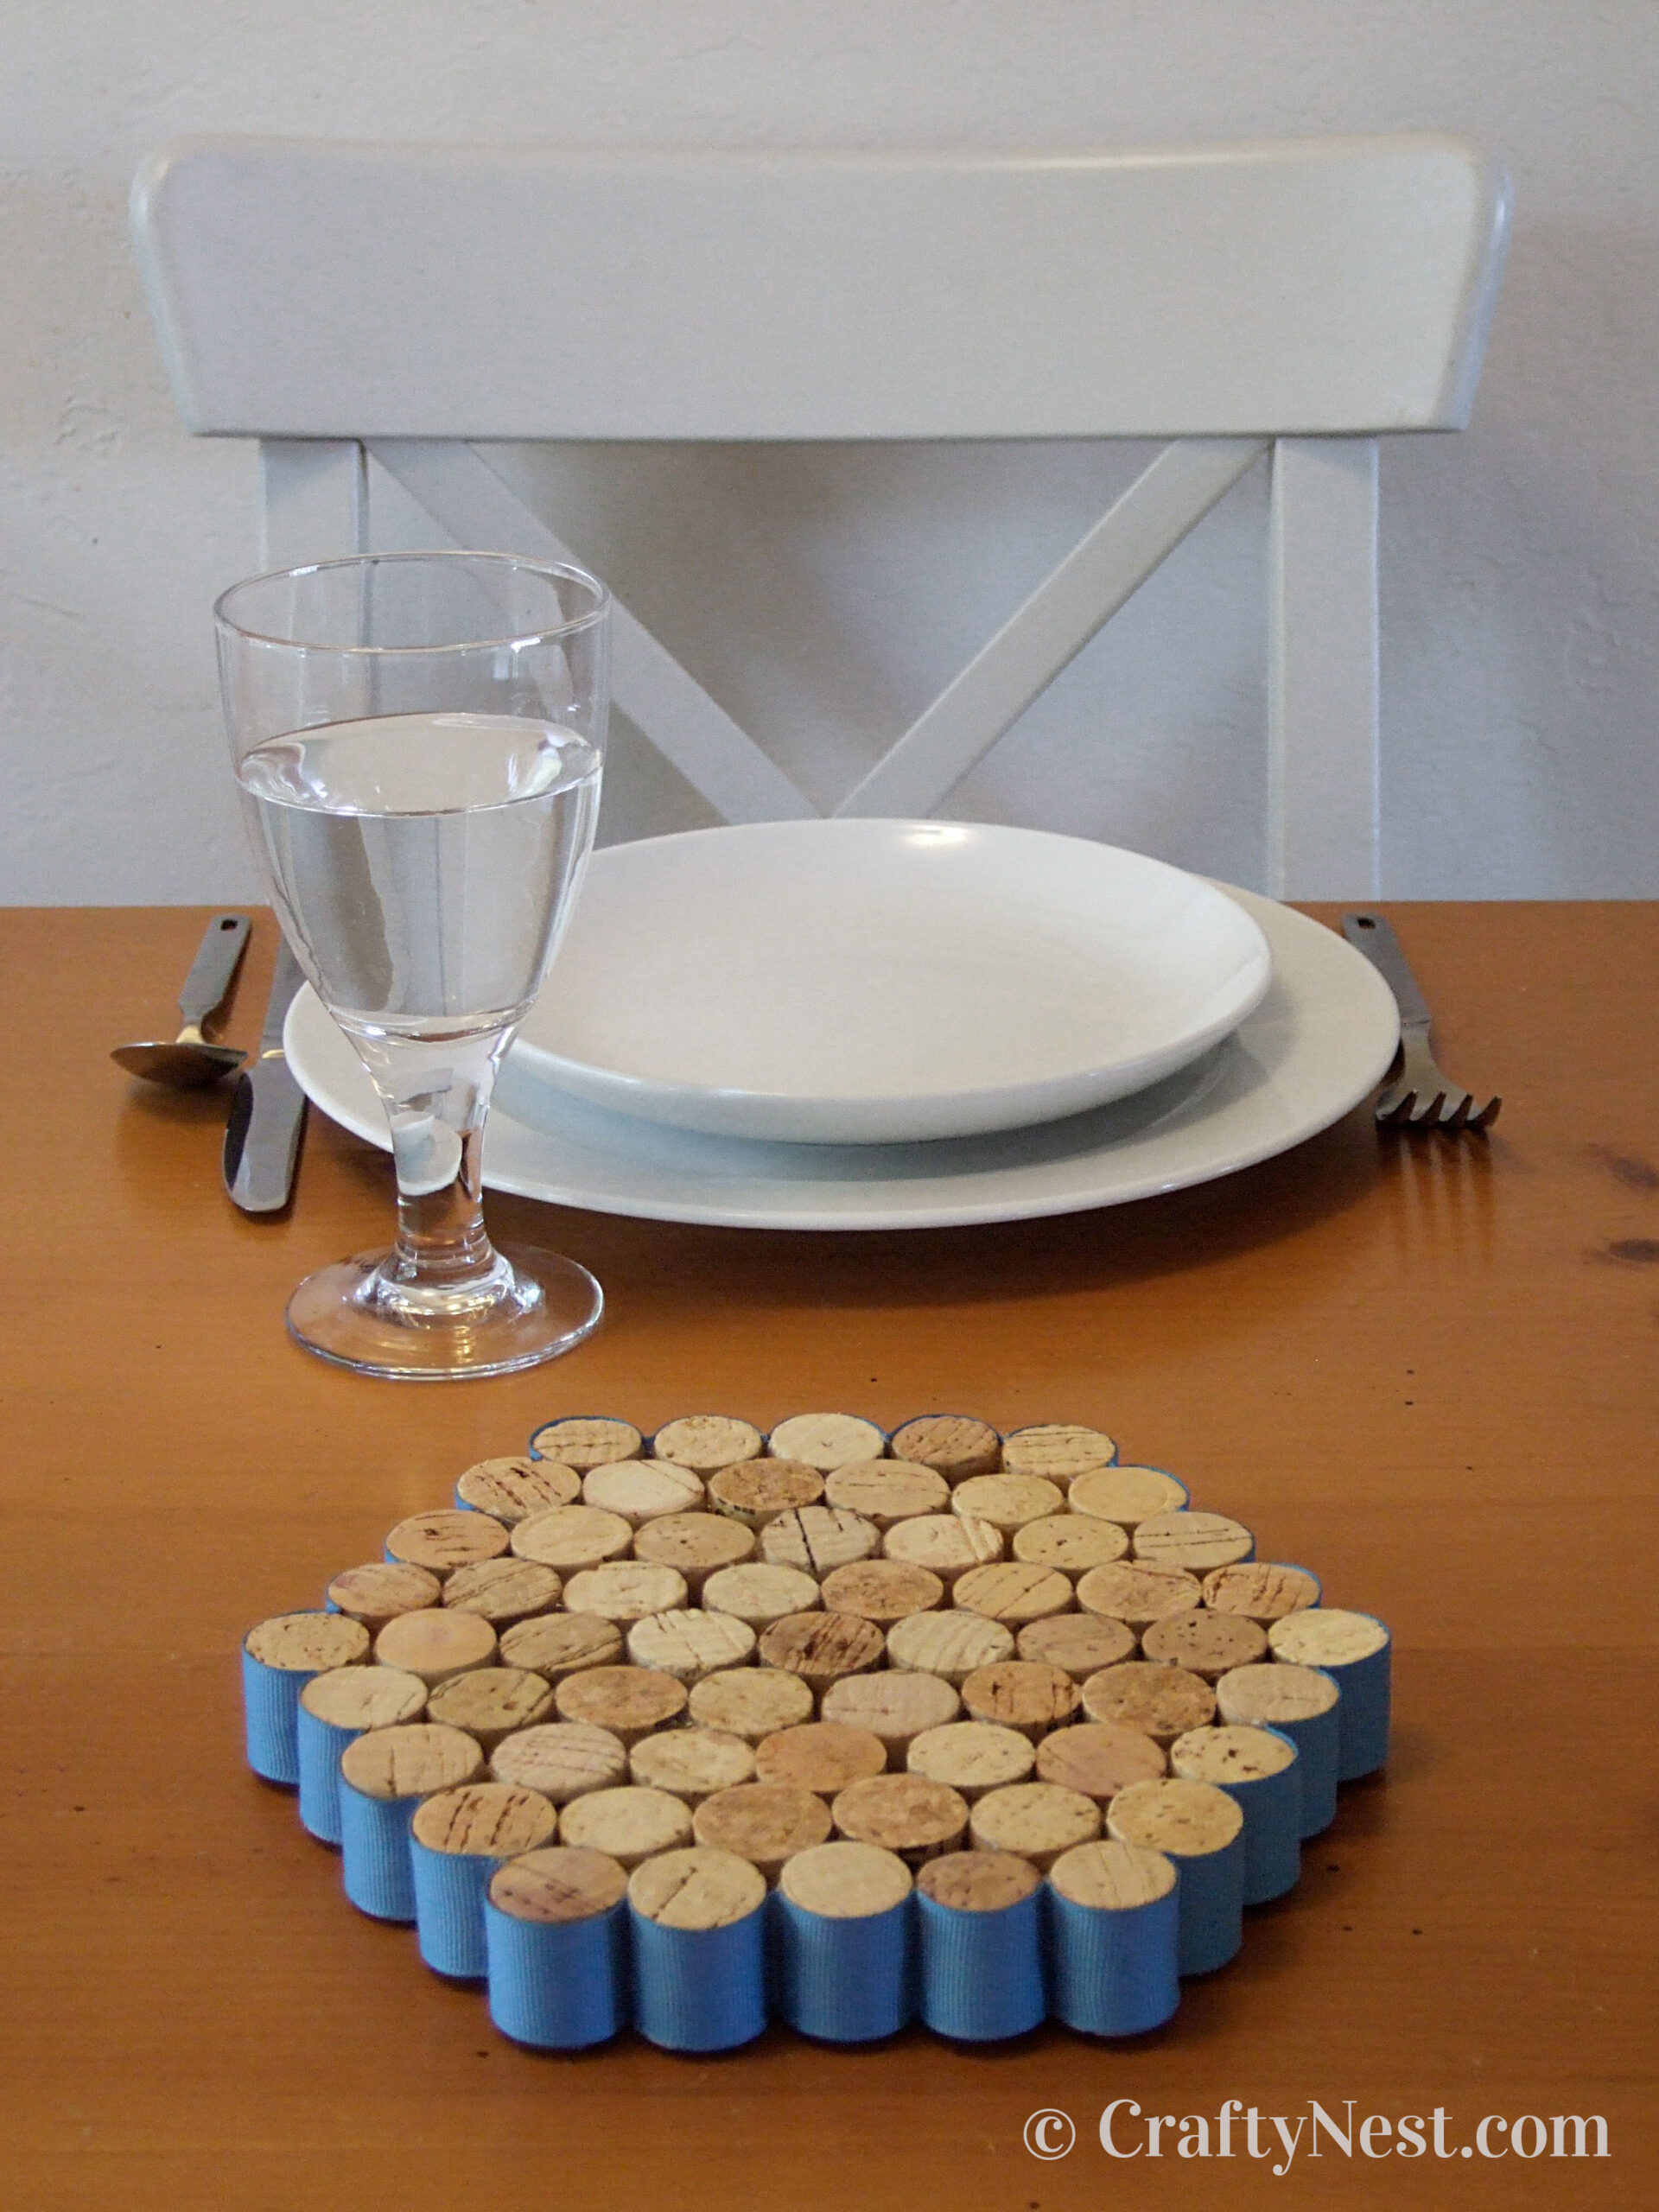 Trivet made out of wine corks, photo